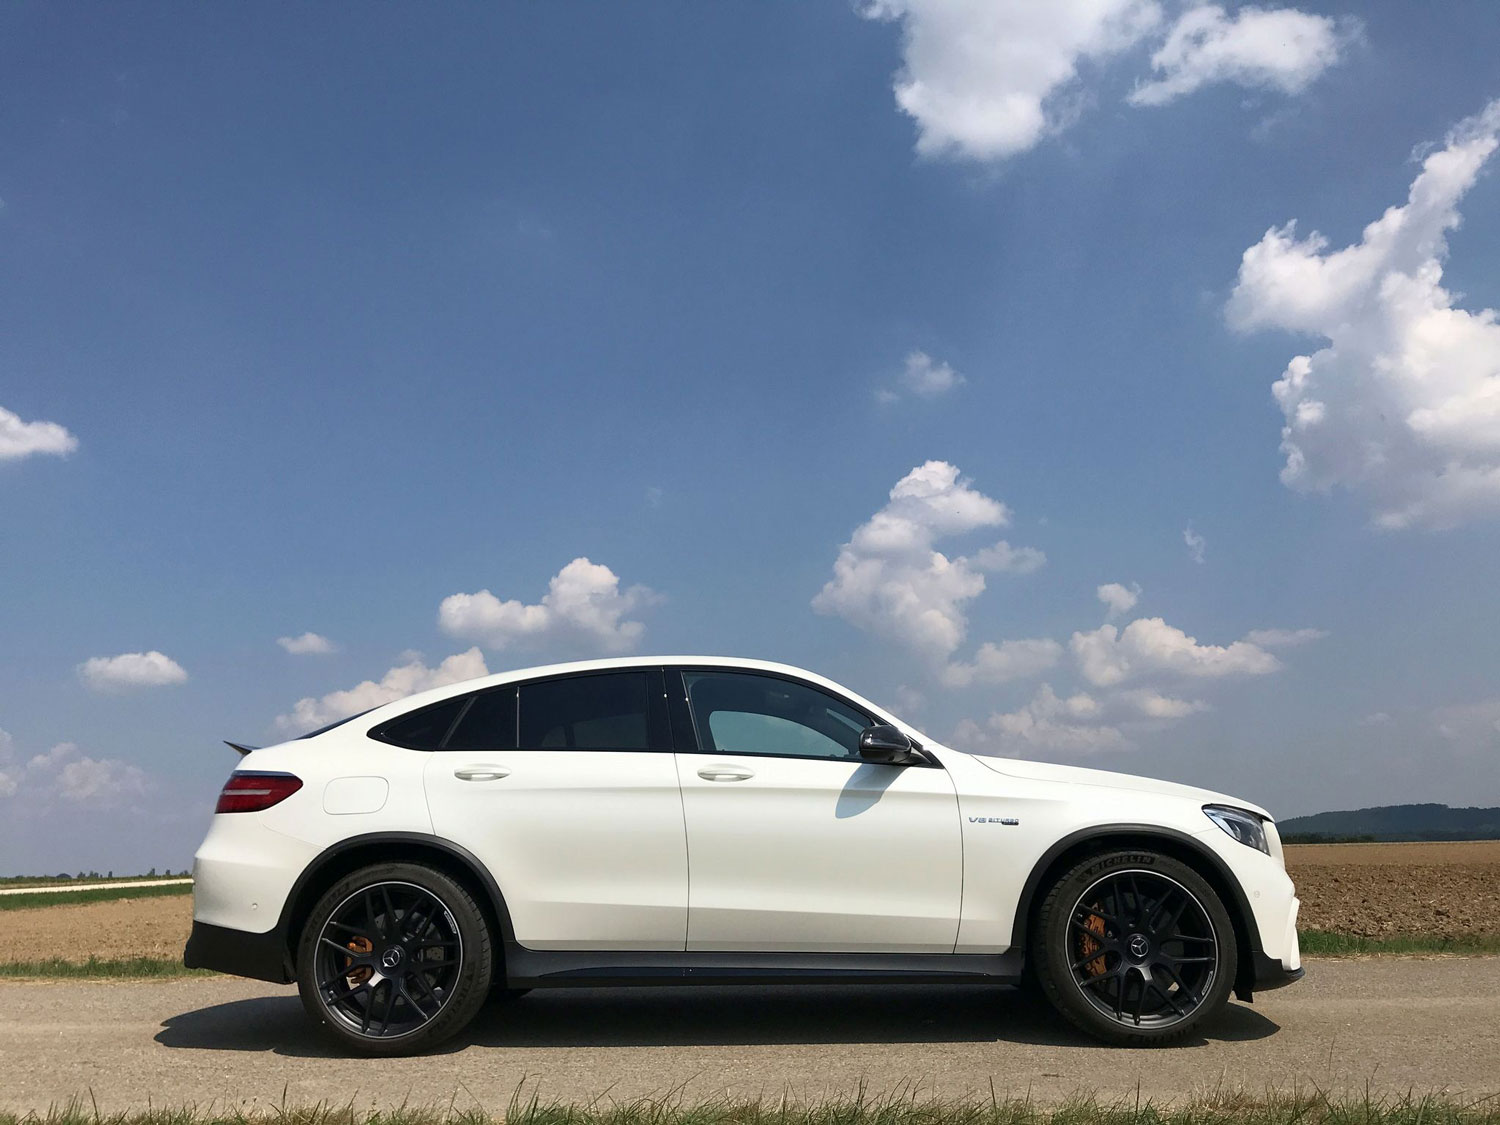 Новий Mercedes-AMG GLC 63 S 4MATIC у профіль